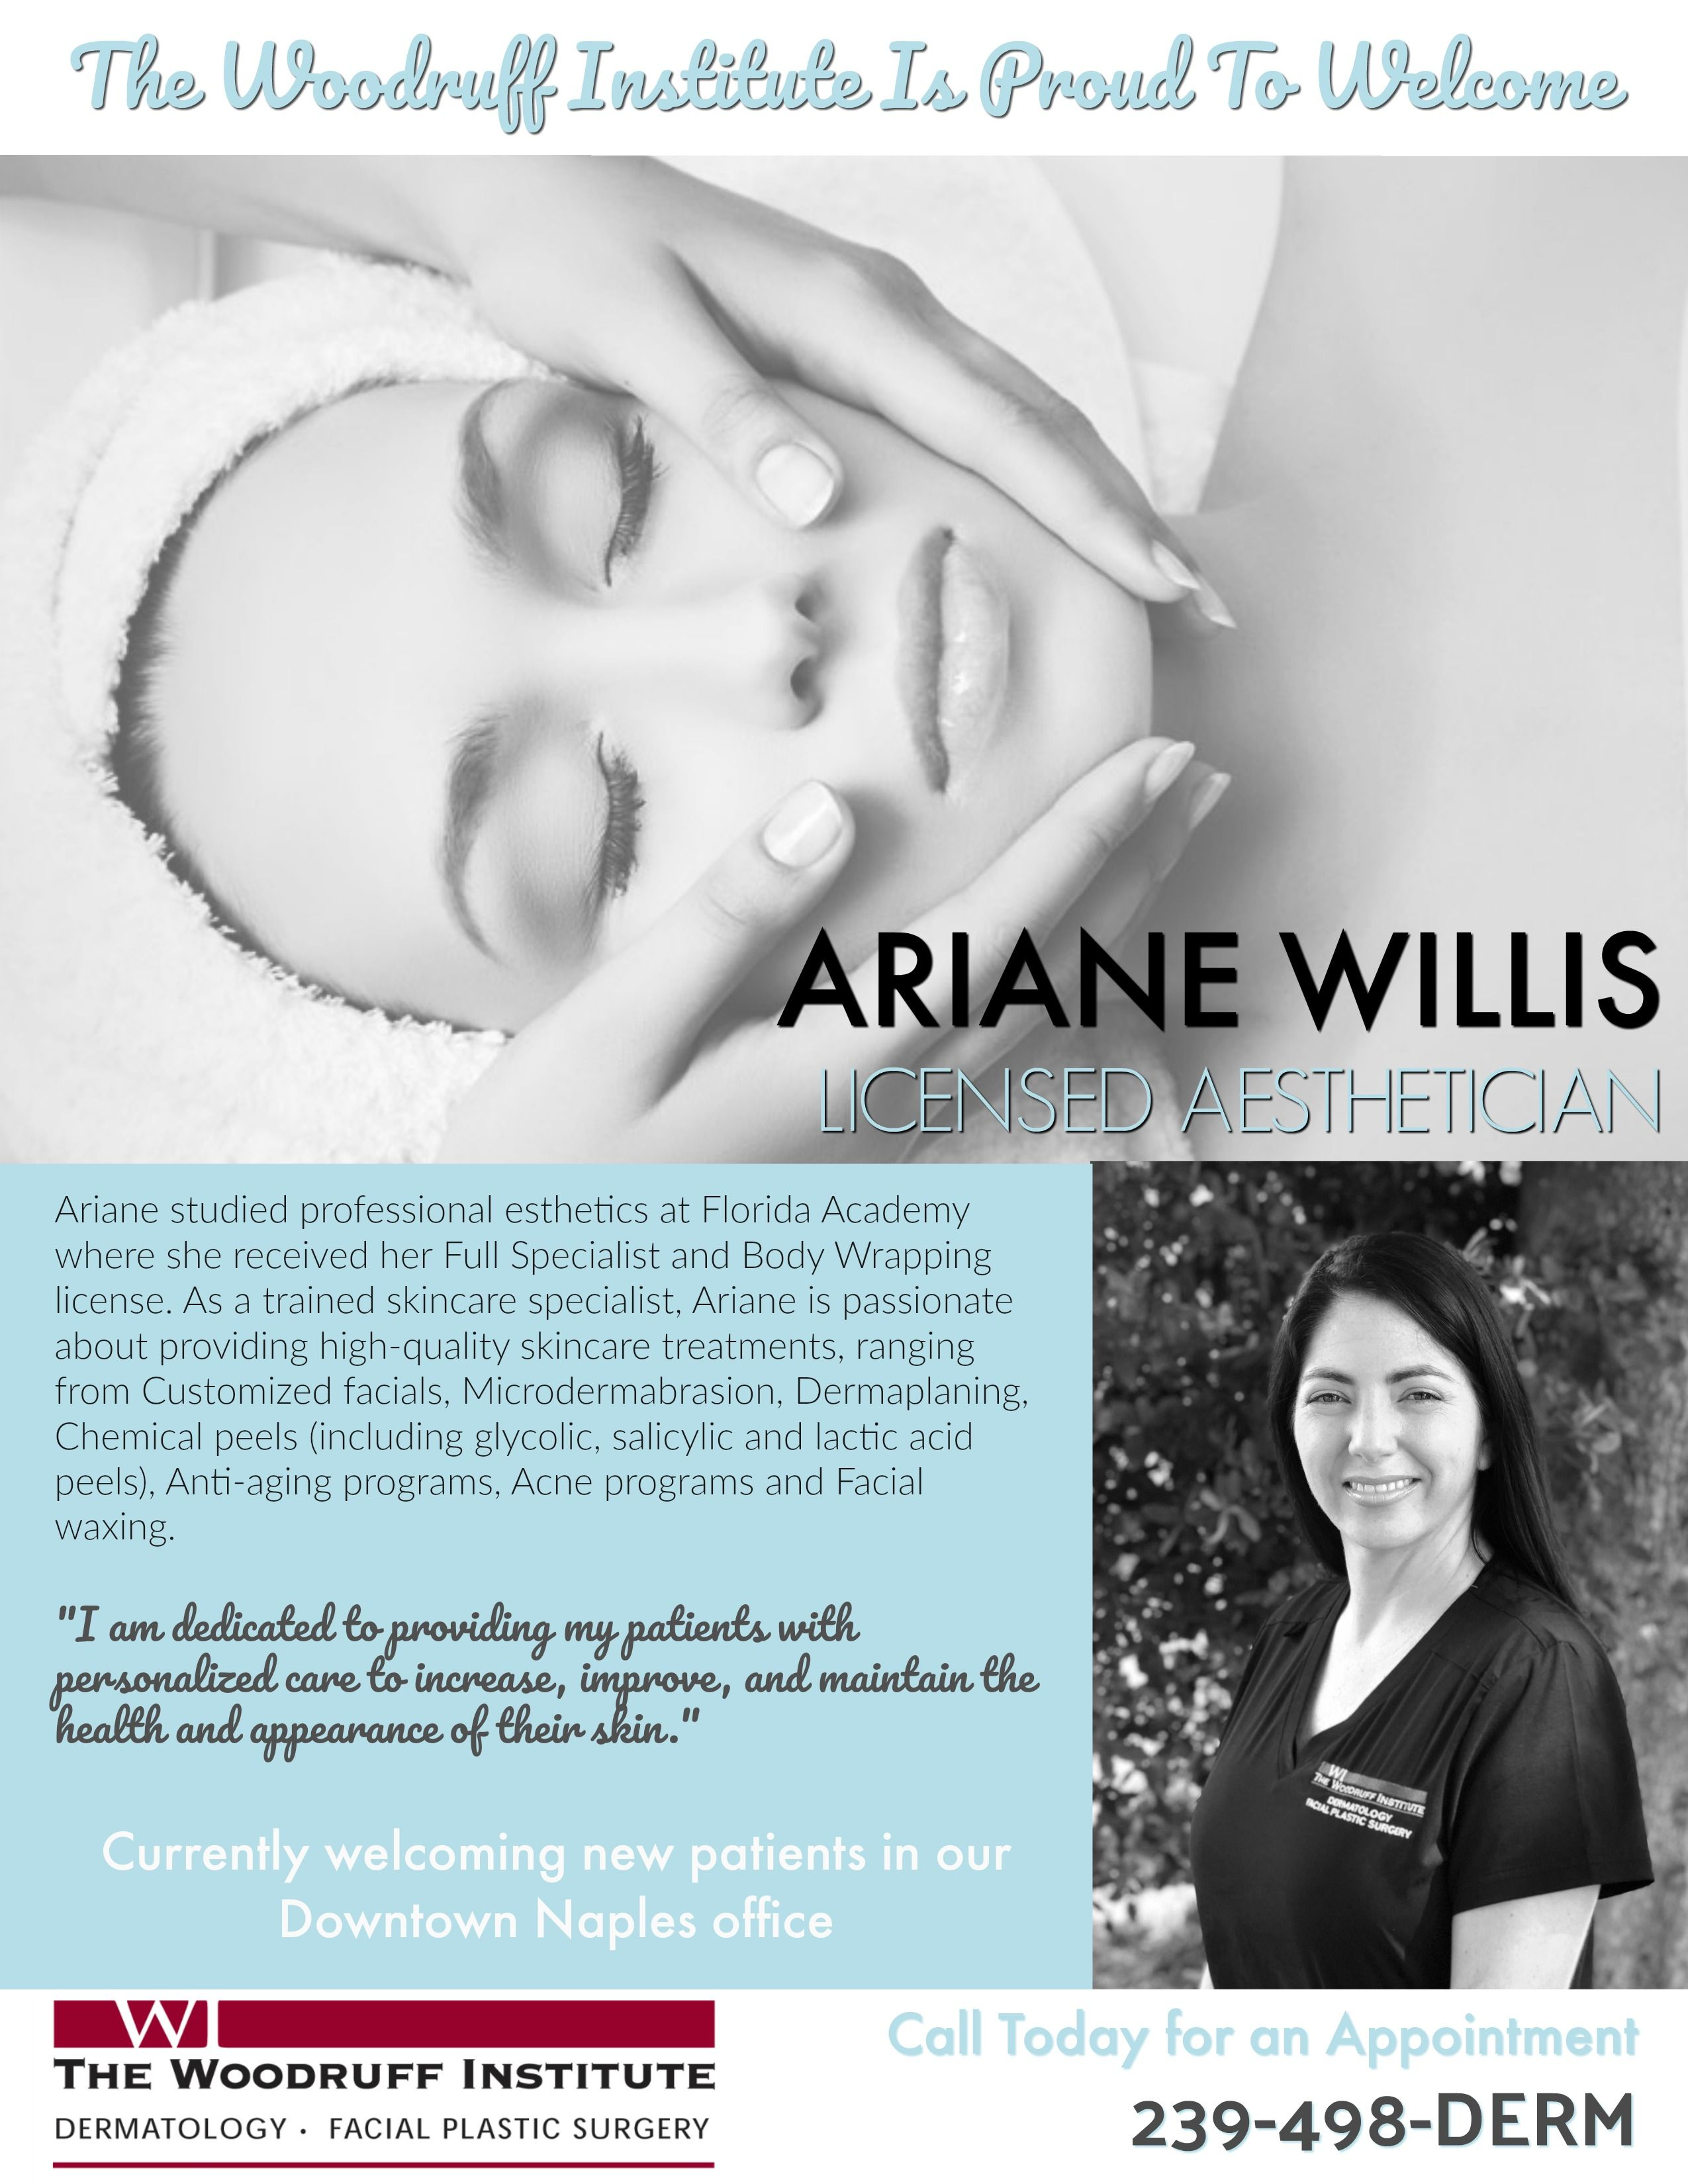 Welcome Our Aesthetician Ariane Ariane Likes To Customize Facials To Her Patient S Needs And Concerns To Hel Skin Care Treatments Chemical Peel Aesthetician